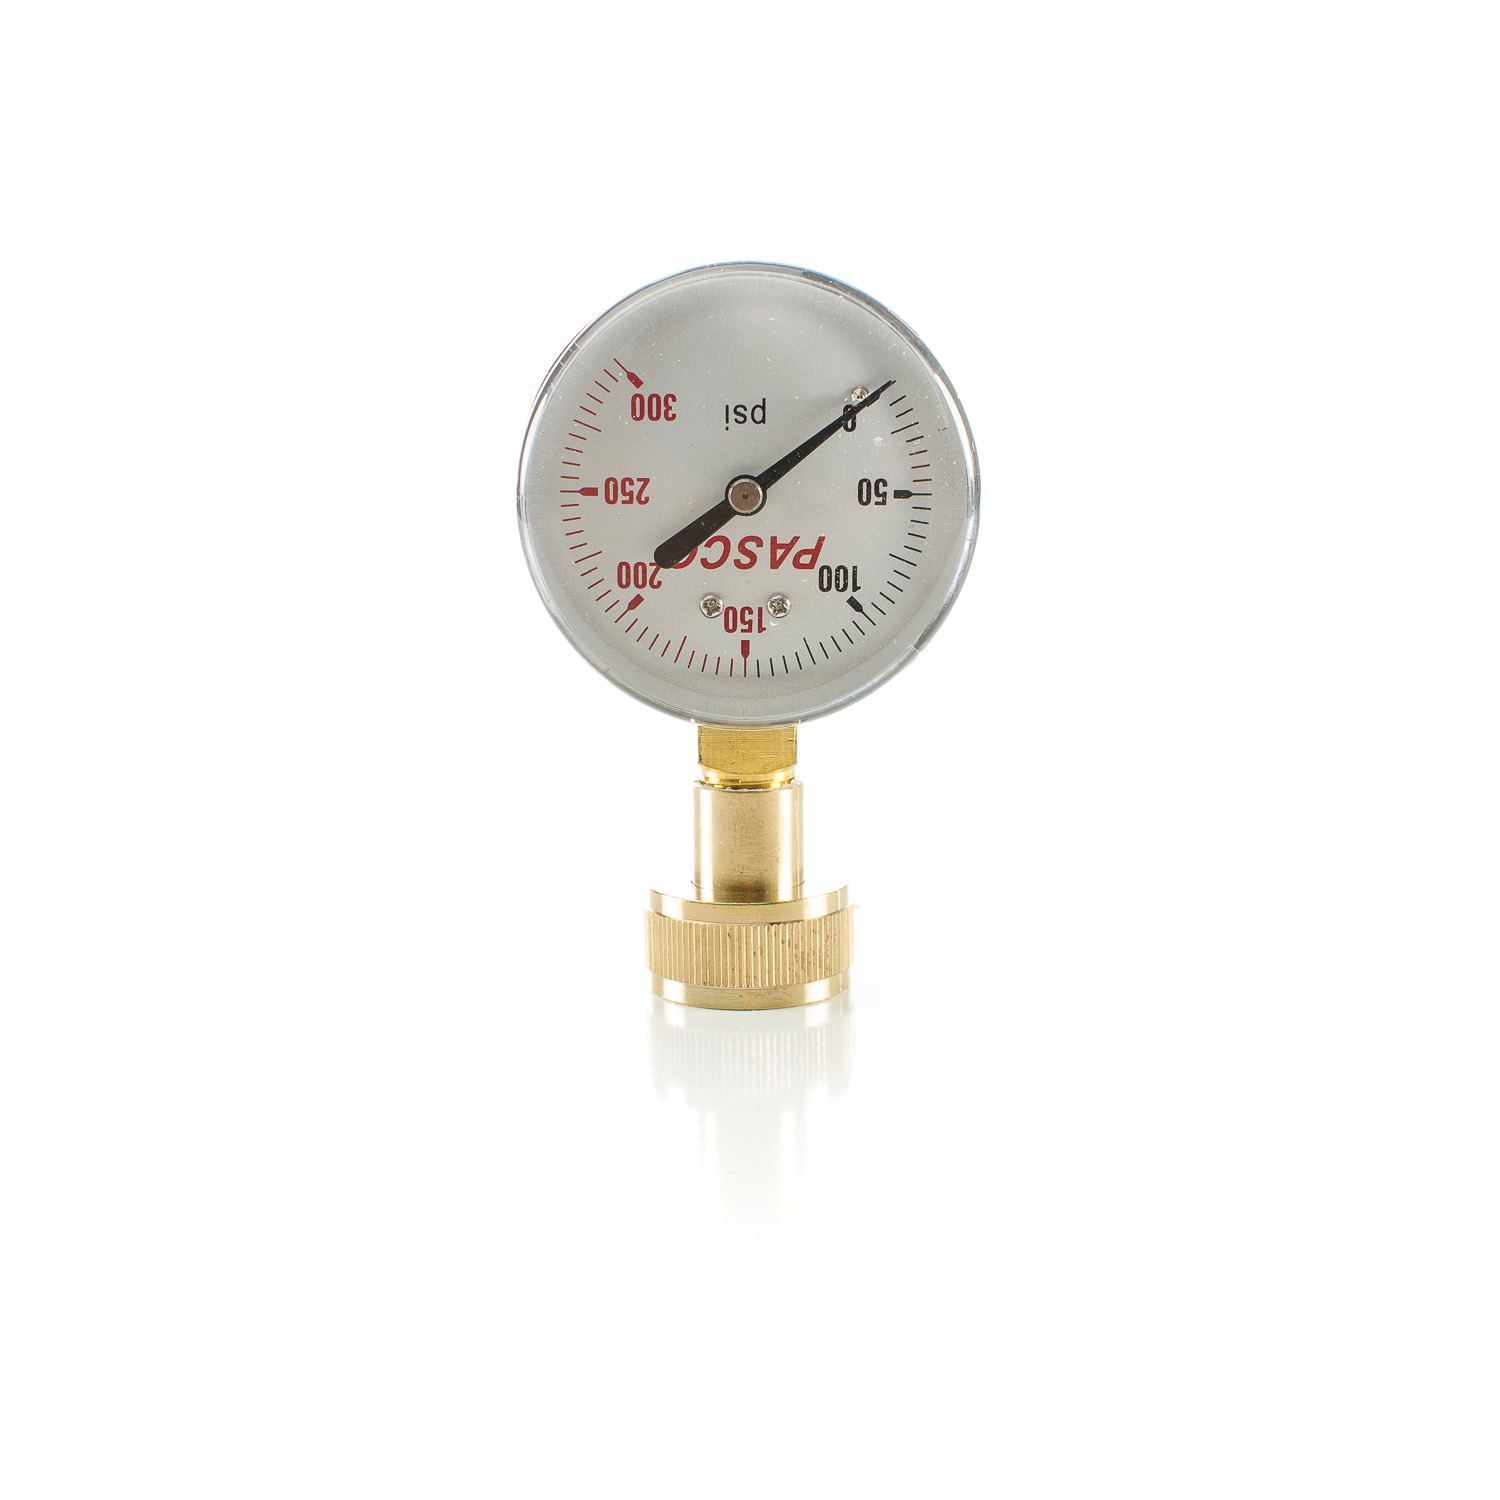 PASCO 1430 Water Test Gauge, 0 to 300 psi, 3/4 in Female Hose Thread Connection, 2-1/2 in Dial